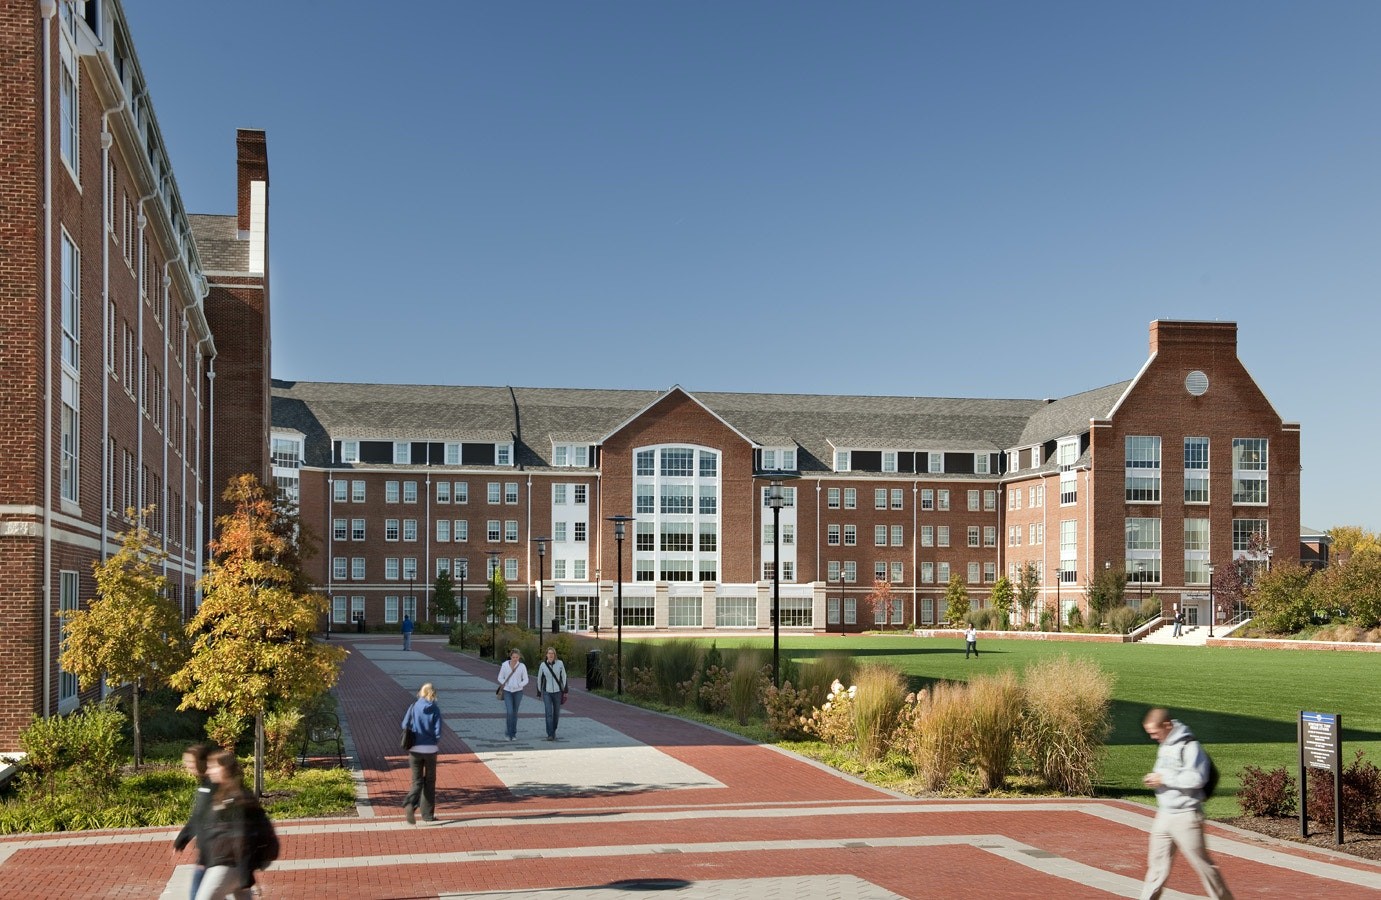 university of delaware - laird campus housing